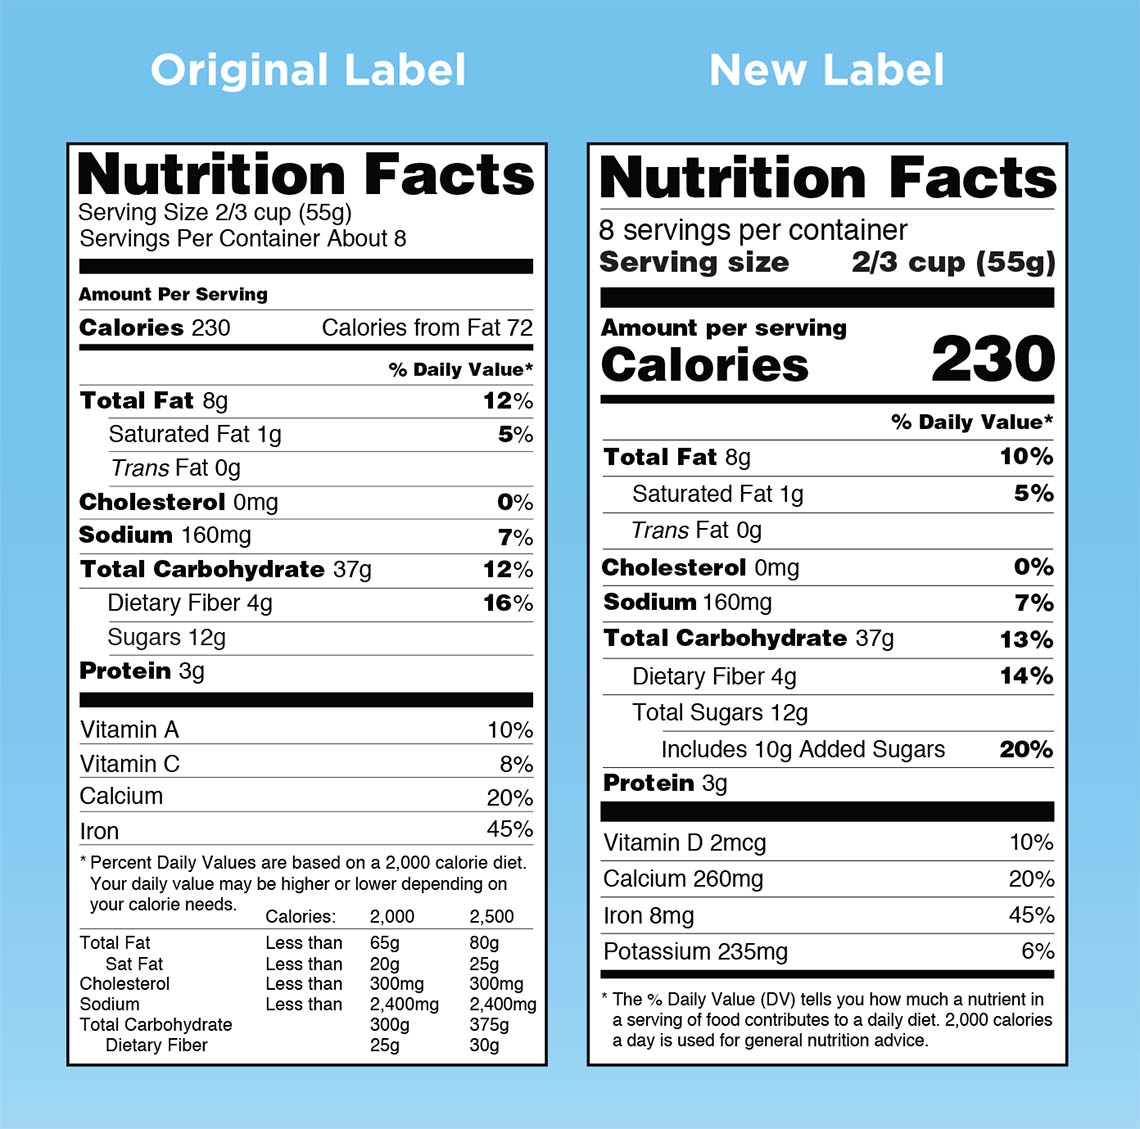 Side-By-Side Comparison of the Old and New Nutrition Facts Label